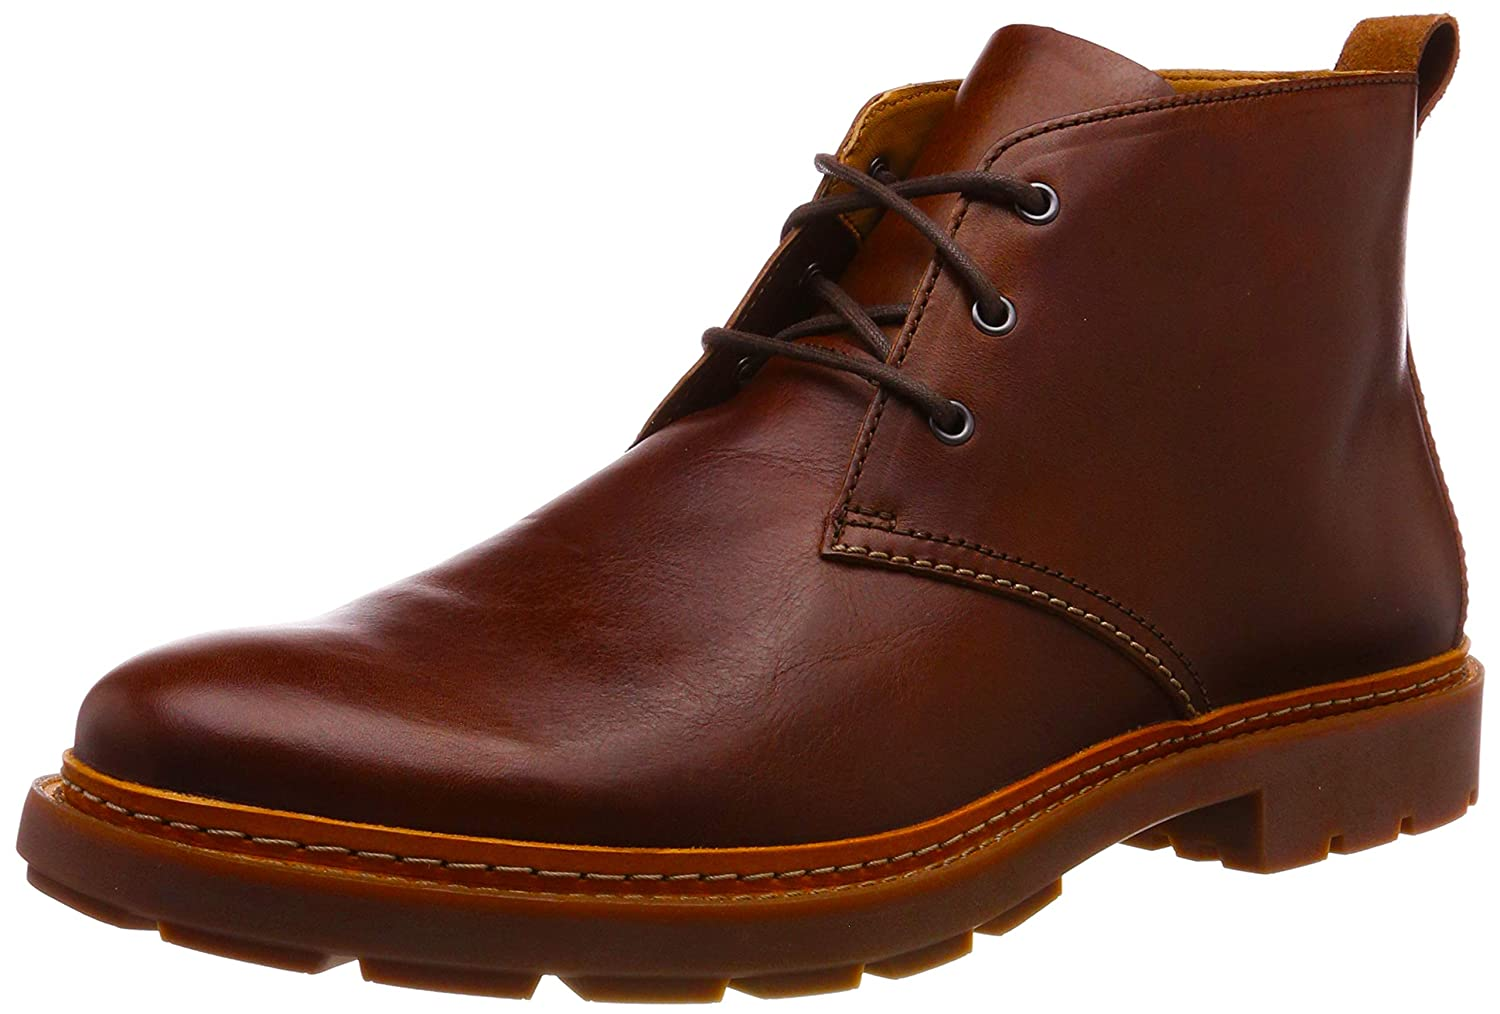 Braun (Mahogany Leather) Clarks Herren Trace Flare Chelsea Stiefel